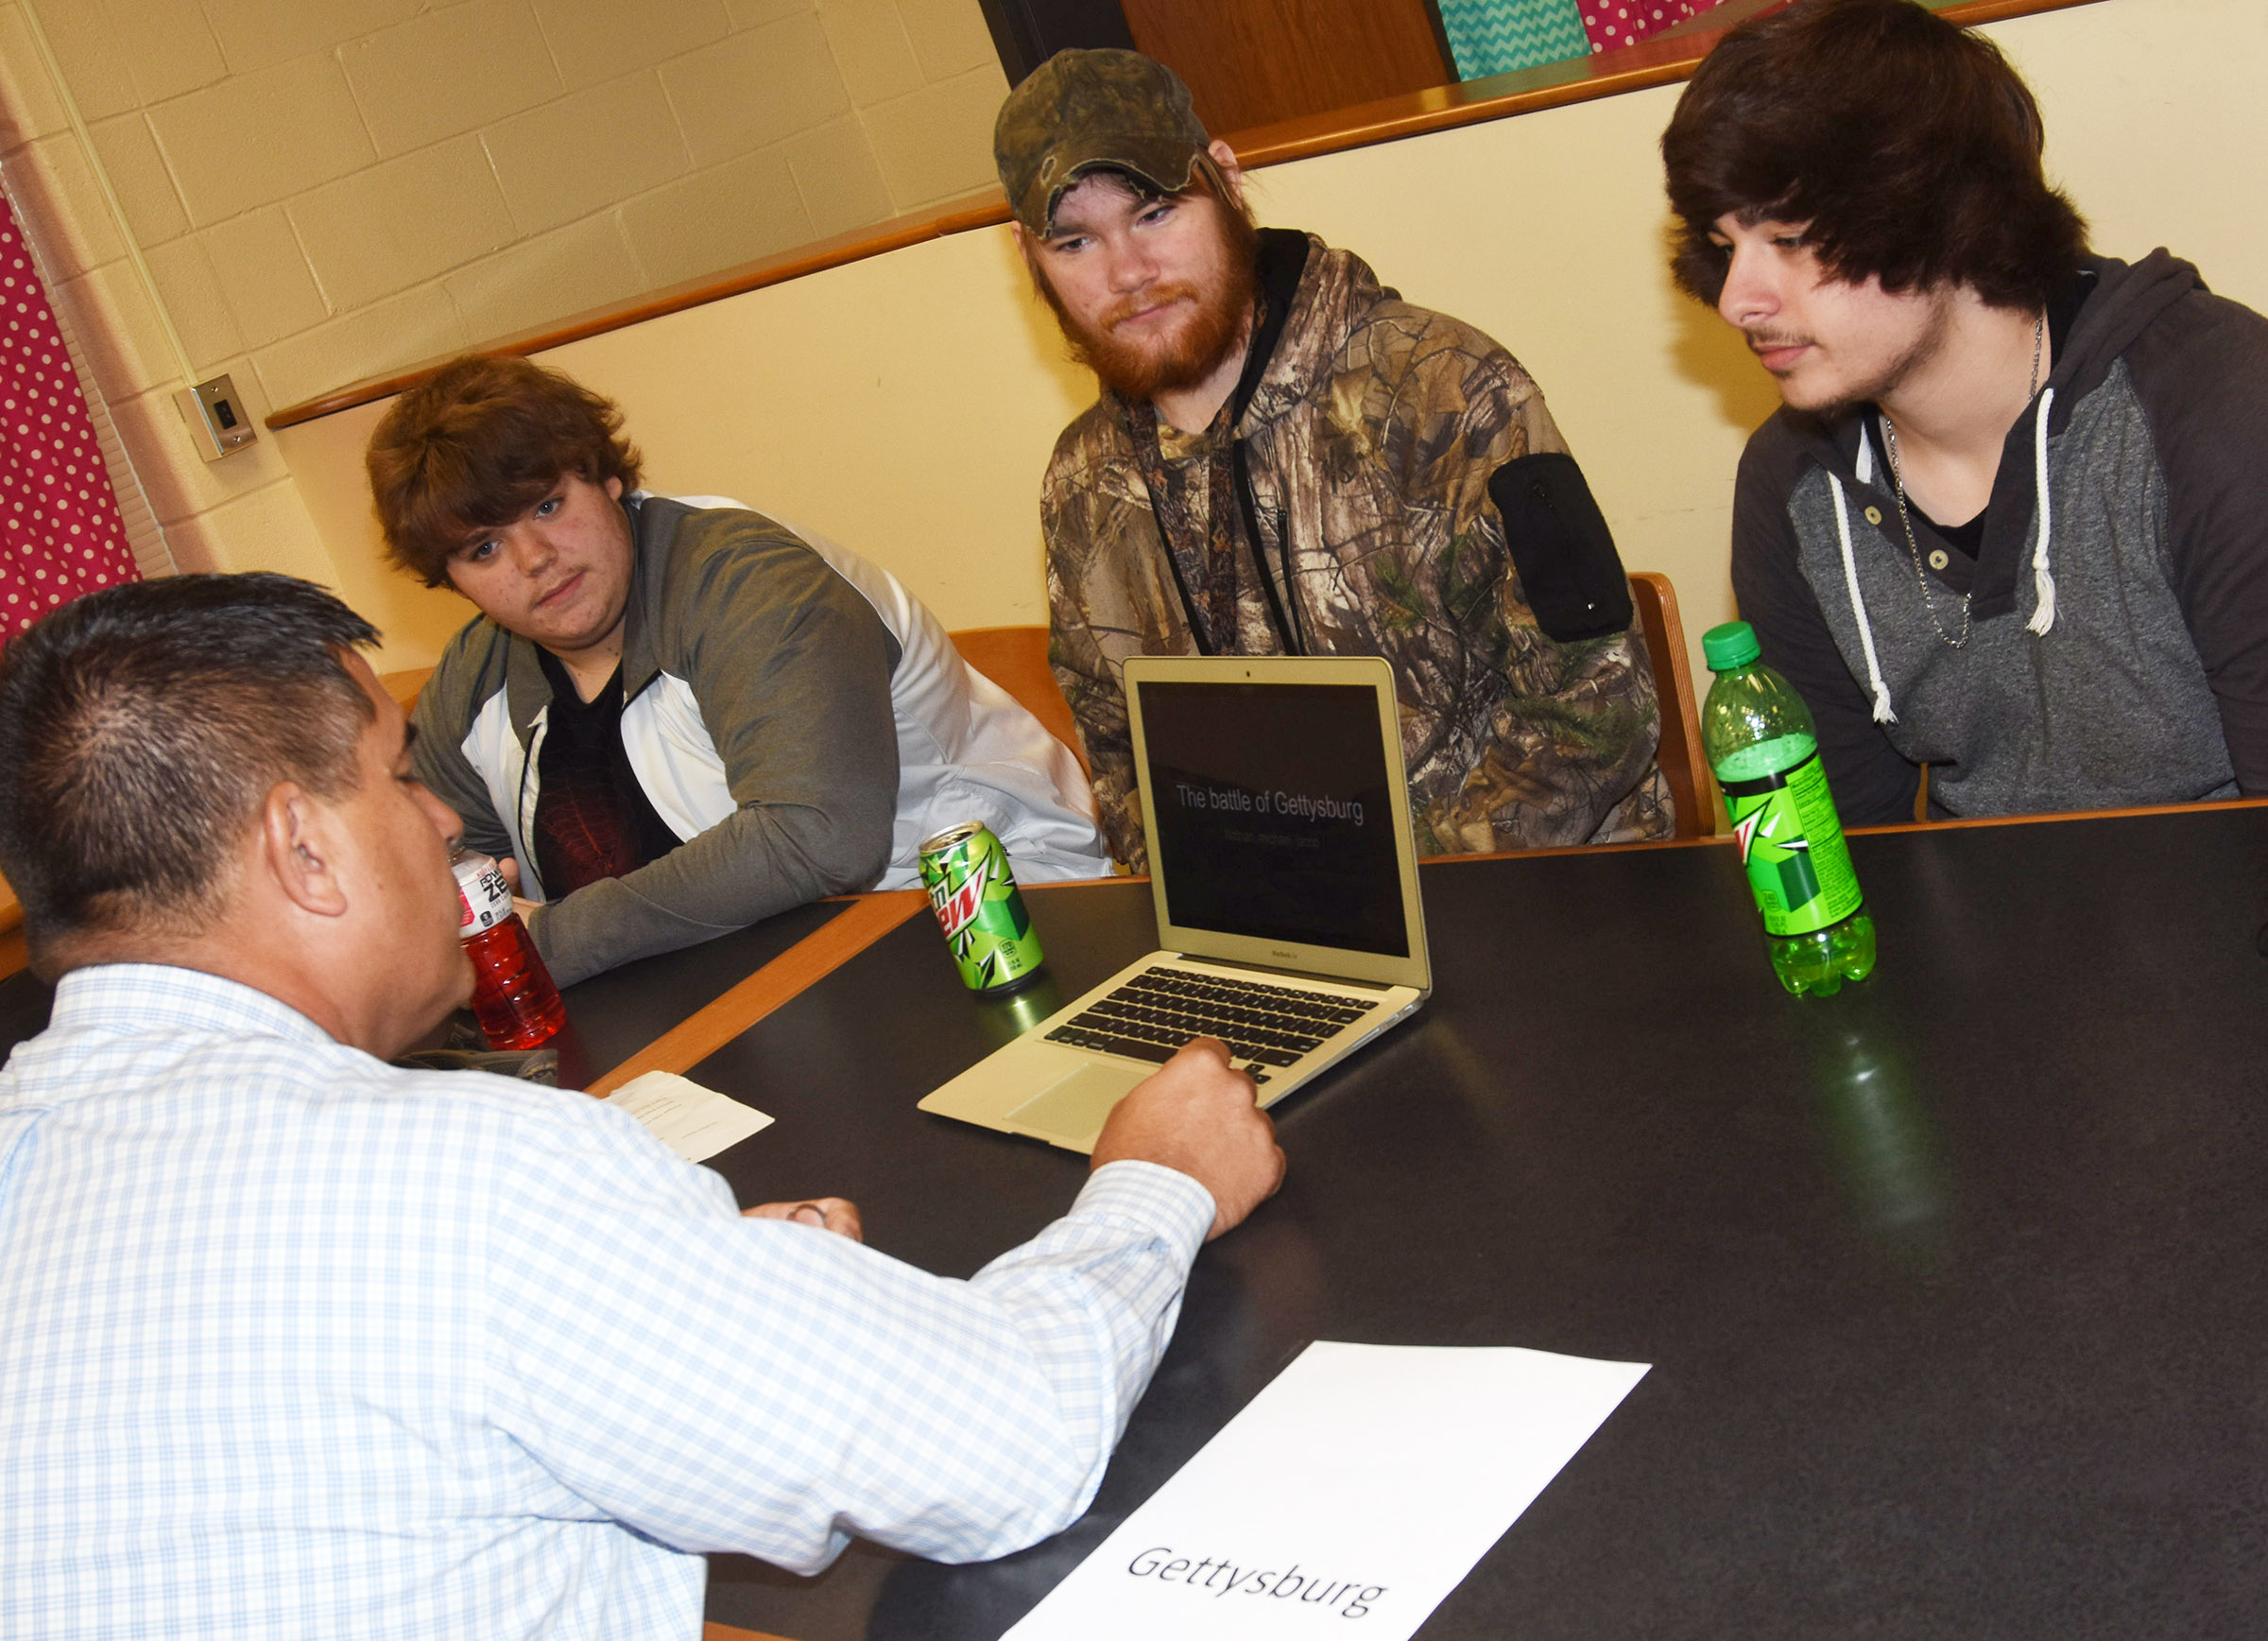 Campbellsville Independent Schools Superintendent Kirby Smith talks with, from left, CHS juniors Nathan Anderson, Michael Milburn and Jacob Mattingly about their project on the Gettysburg war.